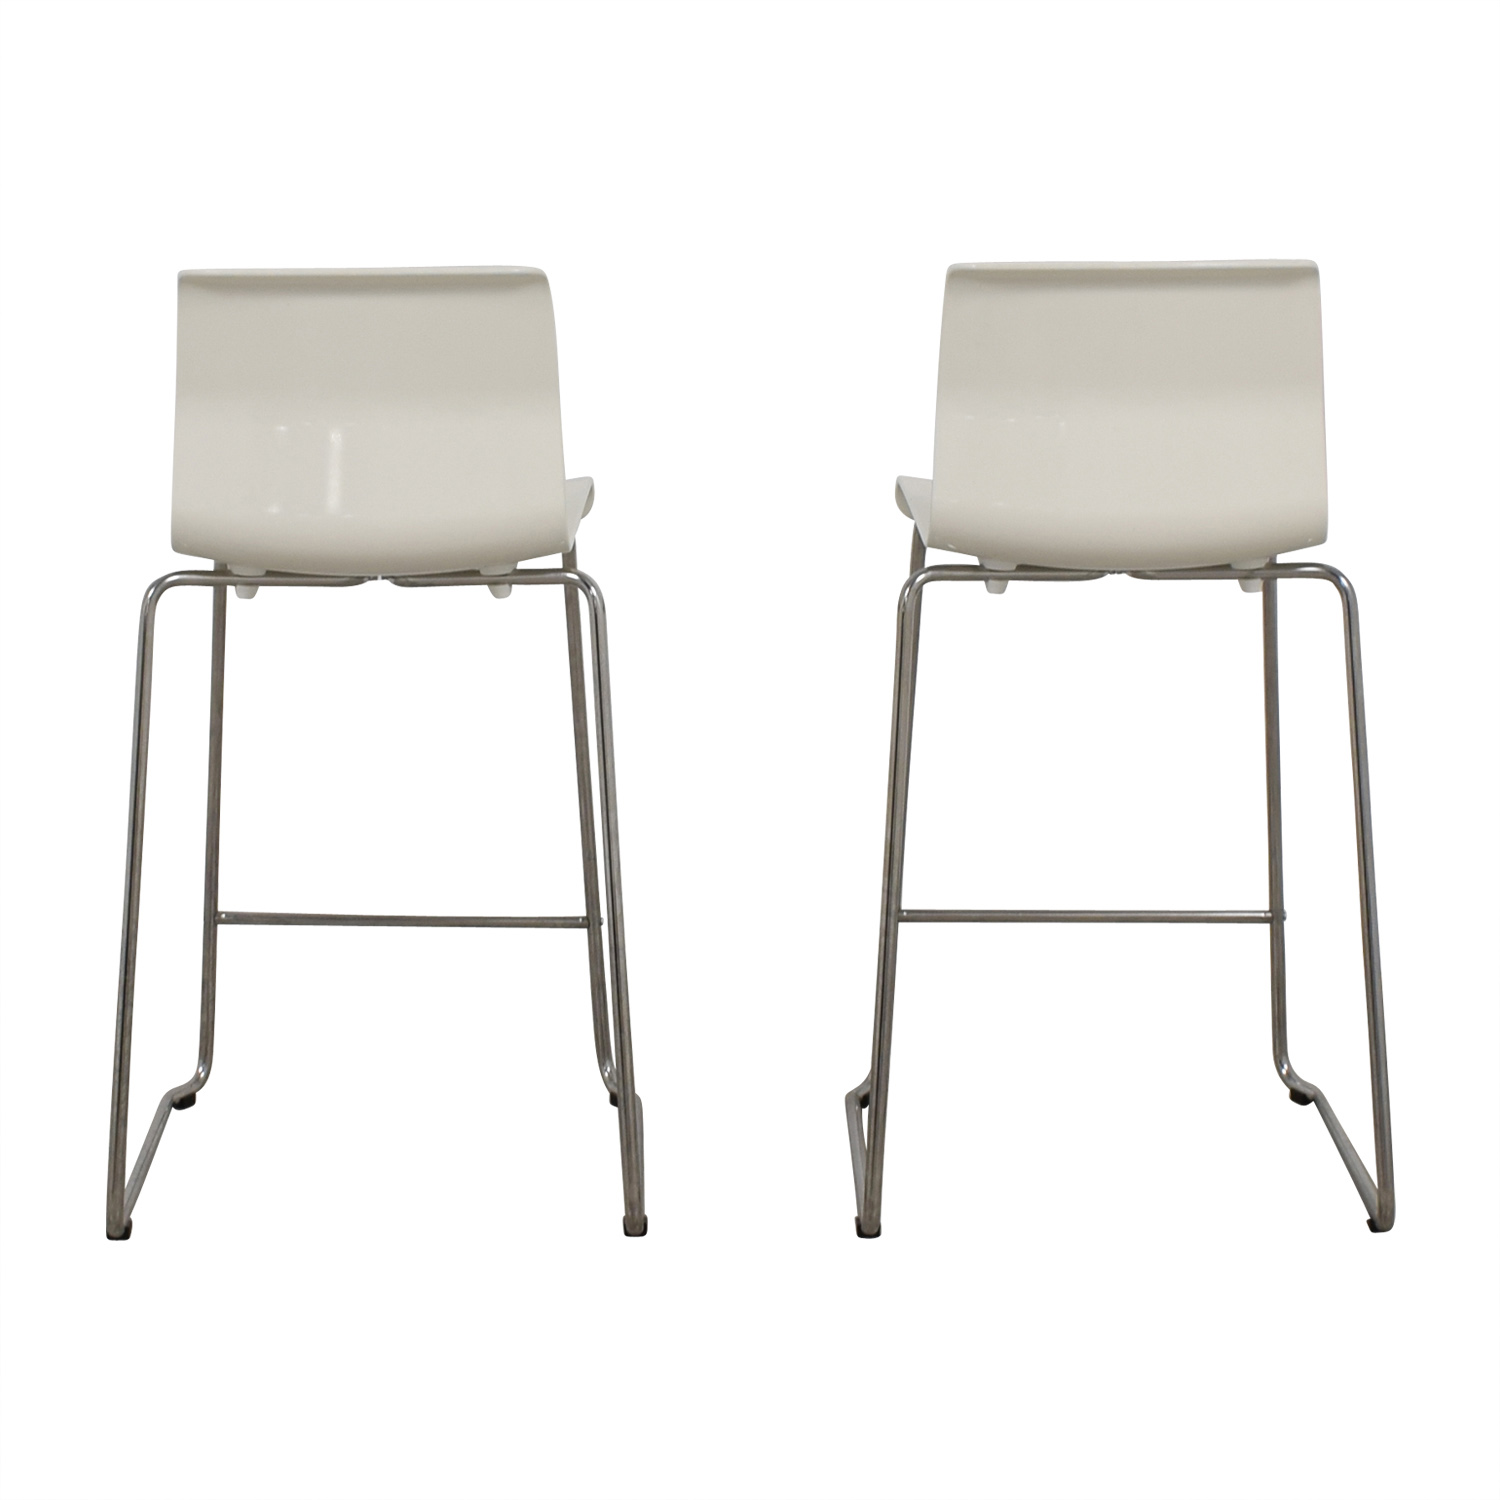 36 Inch Bar Stools Ikea 57 Off Ikea Ikea Glenn White Bar Stools Chairs